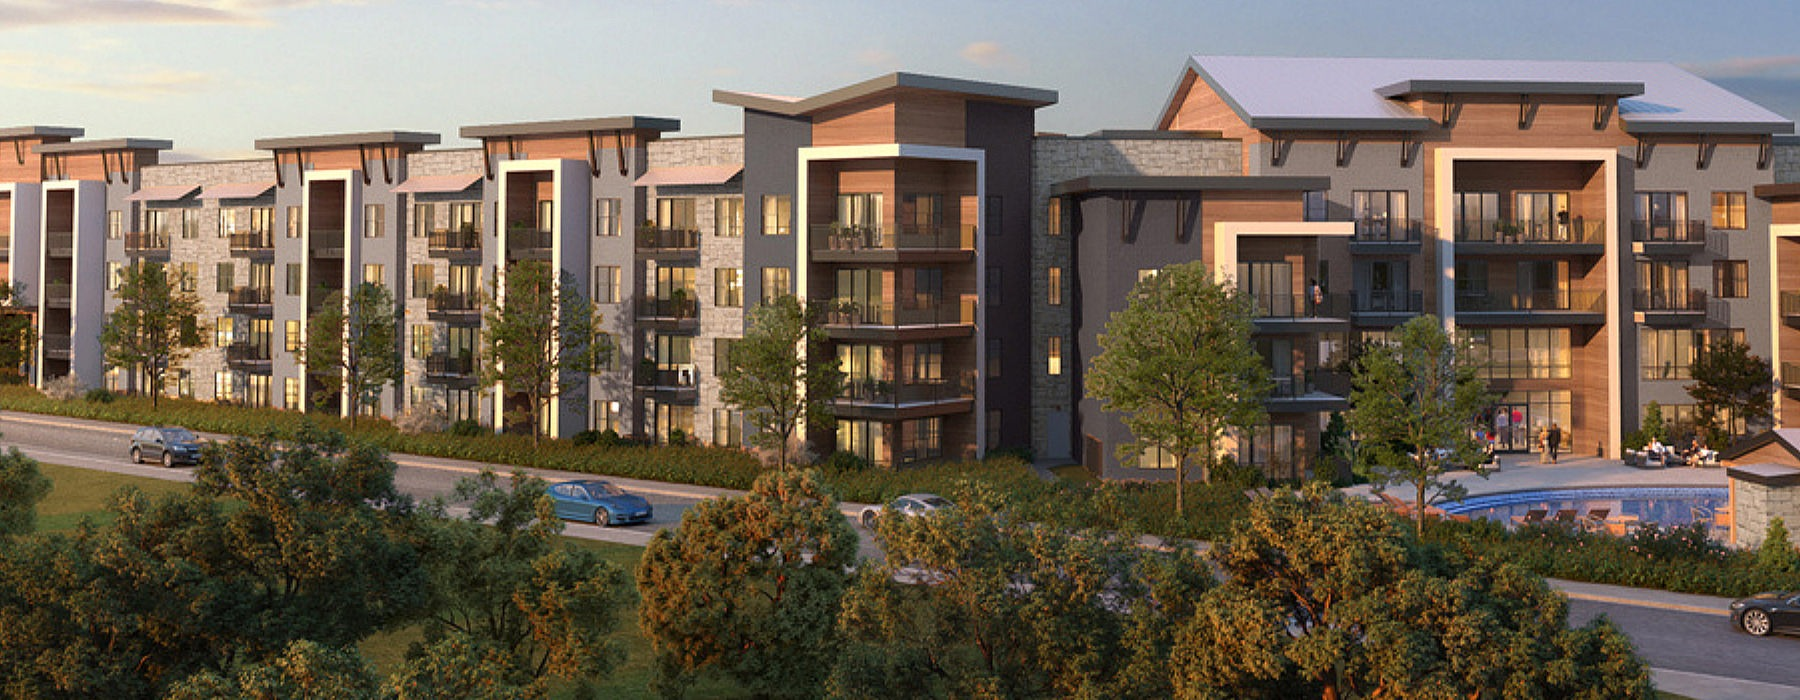 street view rendering of property showing nearby lush landscaping, trees & nearness to swimming pool